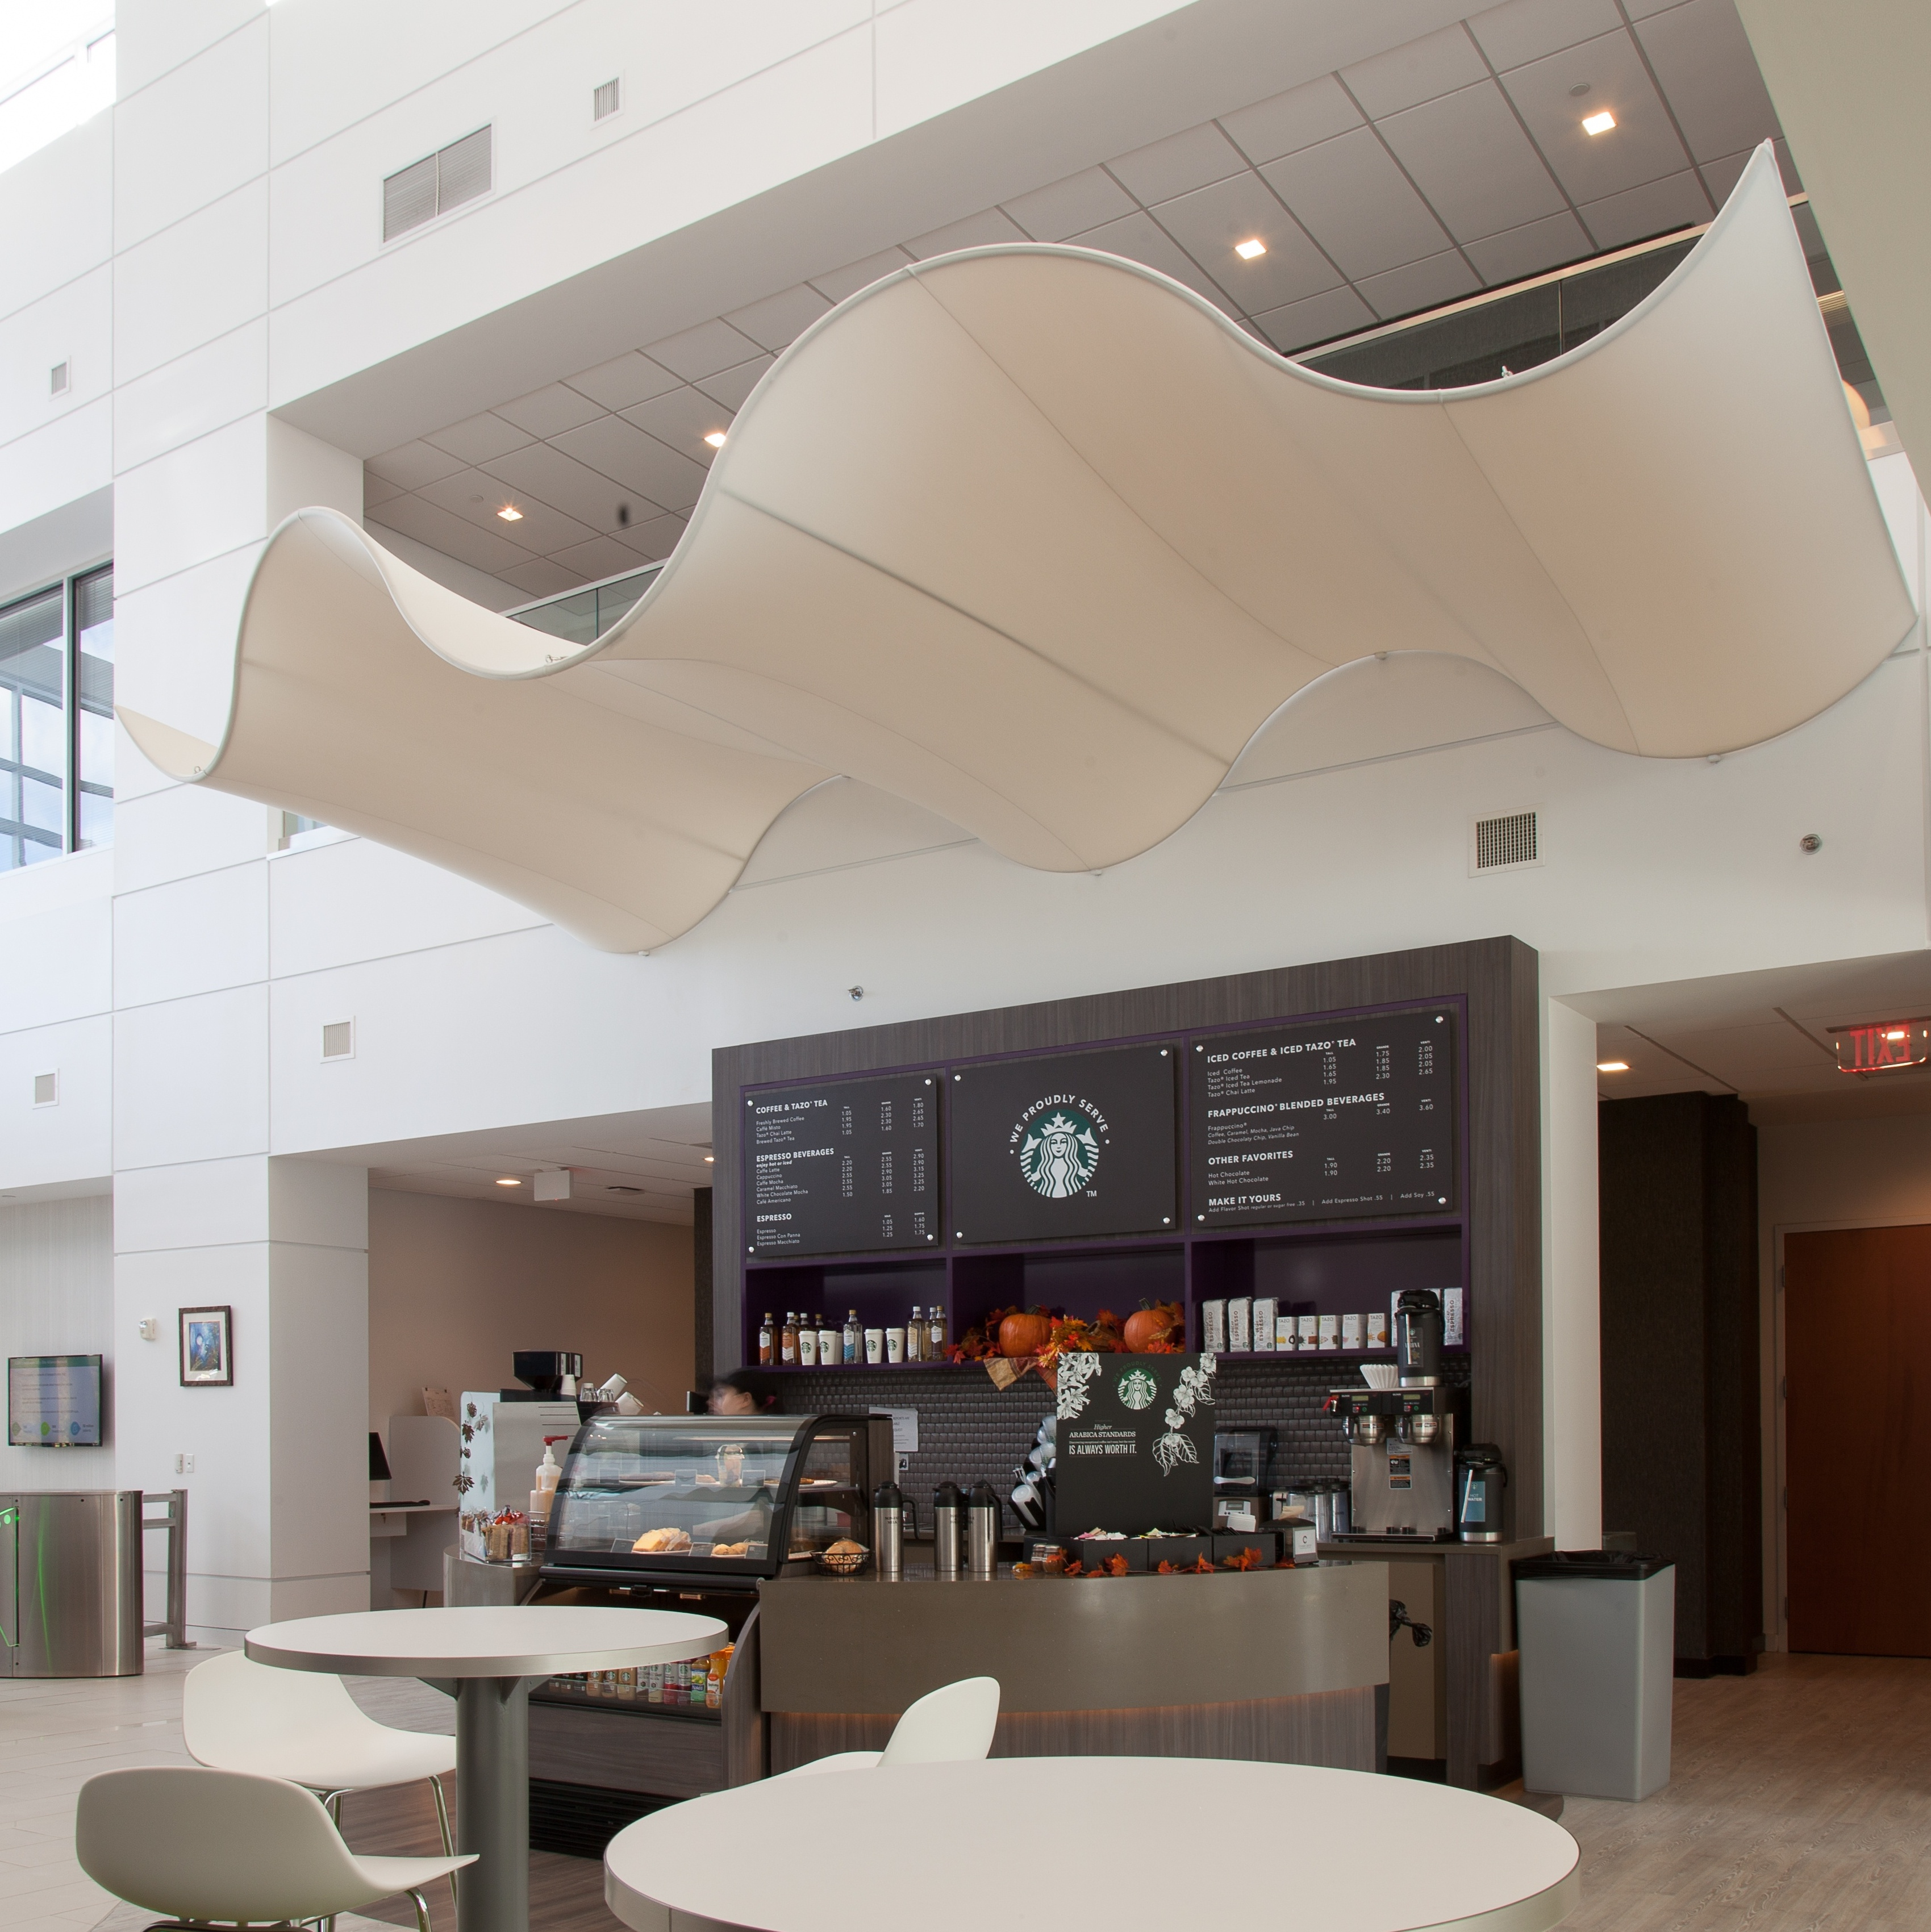 Transformit Canopy for Starbucks Coffee @ ICON